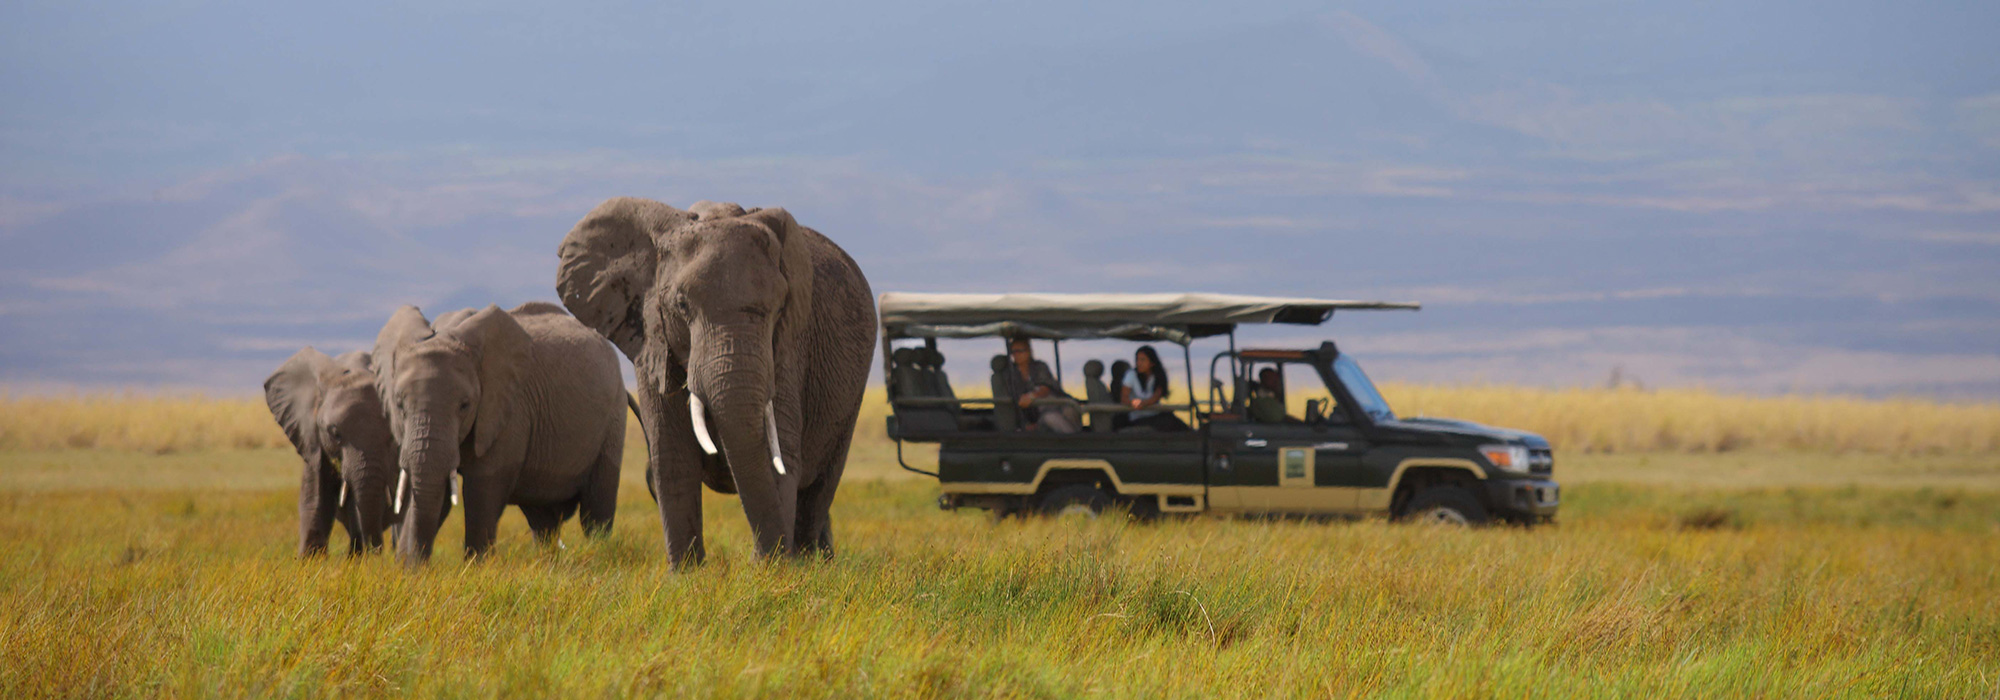 Game Drive in East Africa